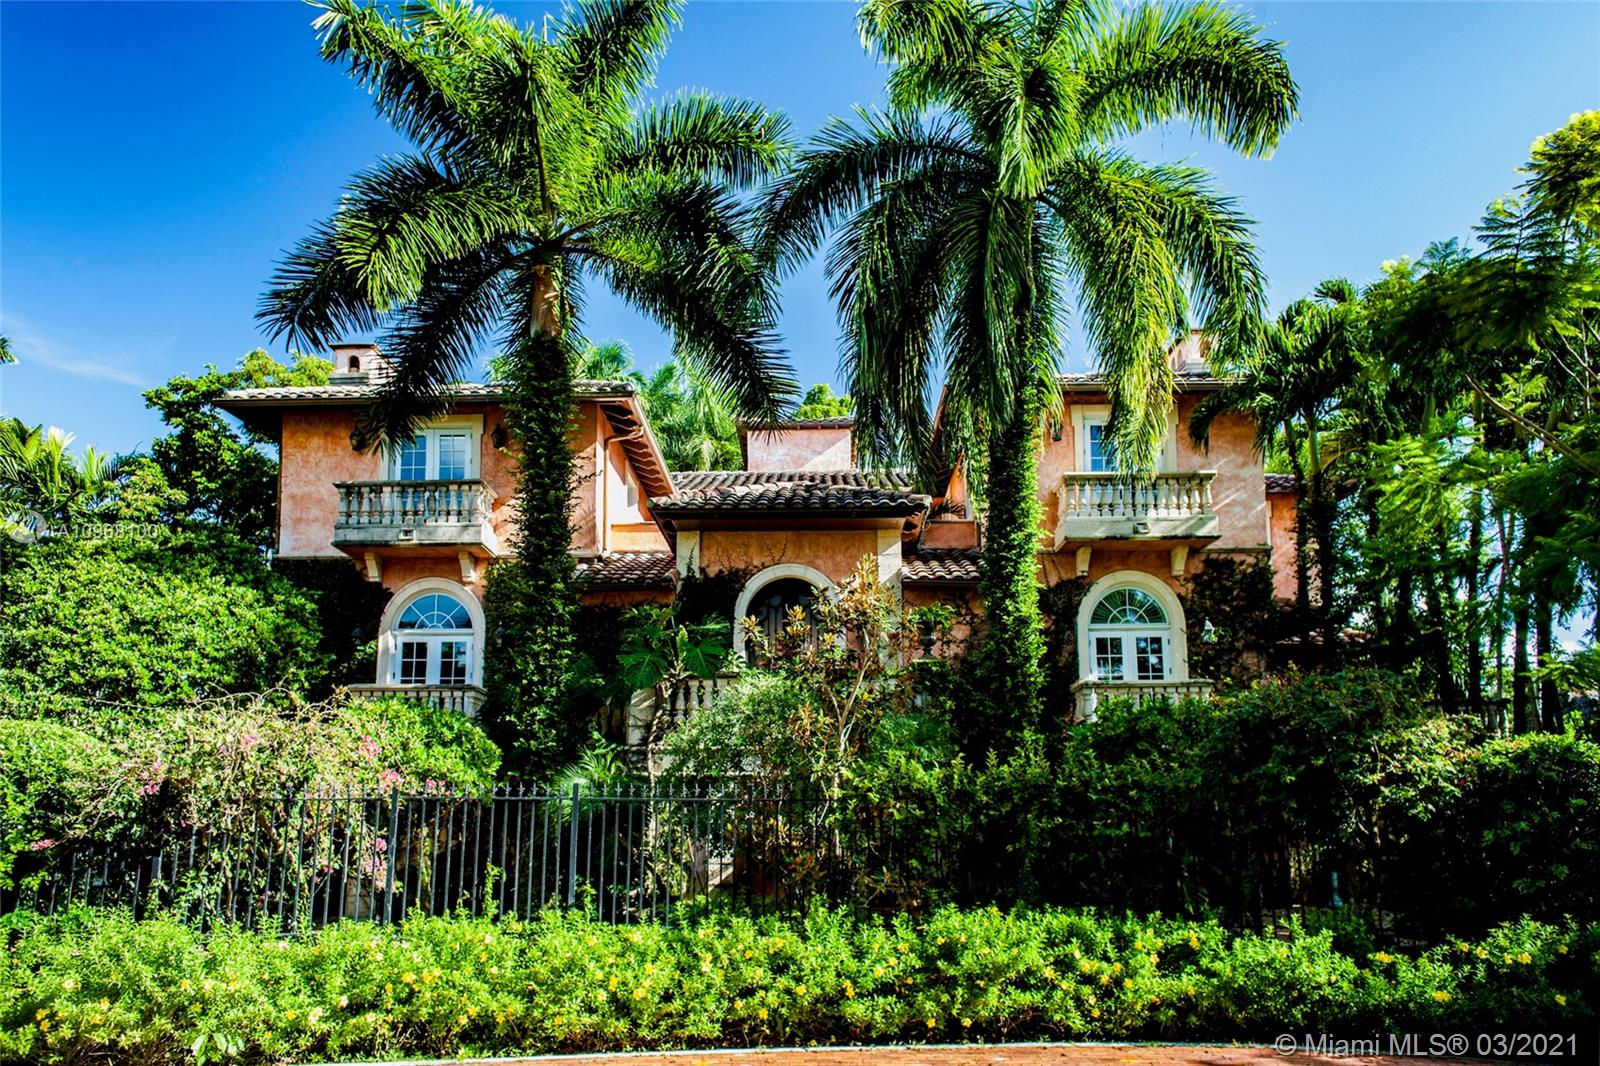 """Located in one of Miami's most historic and charming villages, nestled amongst the canopy of the native trees lies Coconut Grove's best-kept treasure, """"The Anchorage."""" One of only five rarely available homes which sits behind a 24-hour guard-gated enclave. Inspired by the stately villas of Tuscany, this residence exemplifies grandeur at its finest with a European courtyard leading to an al-fresco patio - perfect for entertaining. This 6,234sq.ft. five-bedroom, five-bath estate features a Chef's kitchen, coffered ceilings, fireplace, elevator, 4-car garage, two powder rooms, and pool. This home is just steps away from the pristine waters of Biscayne Bay and a short walk to the heart of Coconut Grove."""